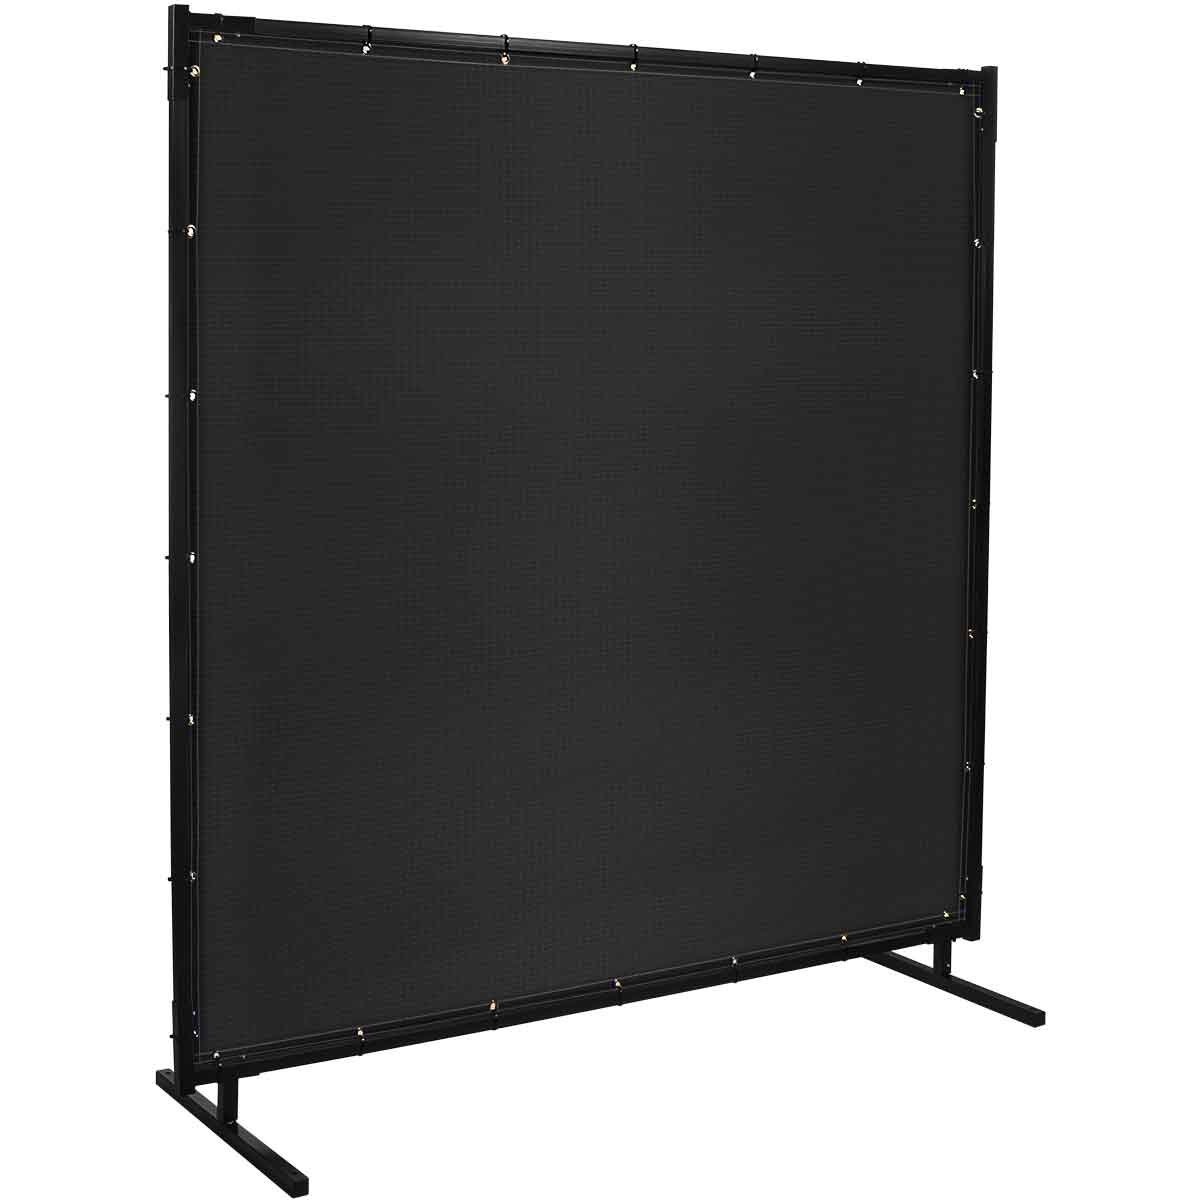 Yellow Steiner 529HD-6X6 Protect-O-Screen Hd Welding Screen with 13-Ounce Vinyl Laminated Polyester Curtain 6 x 6